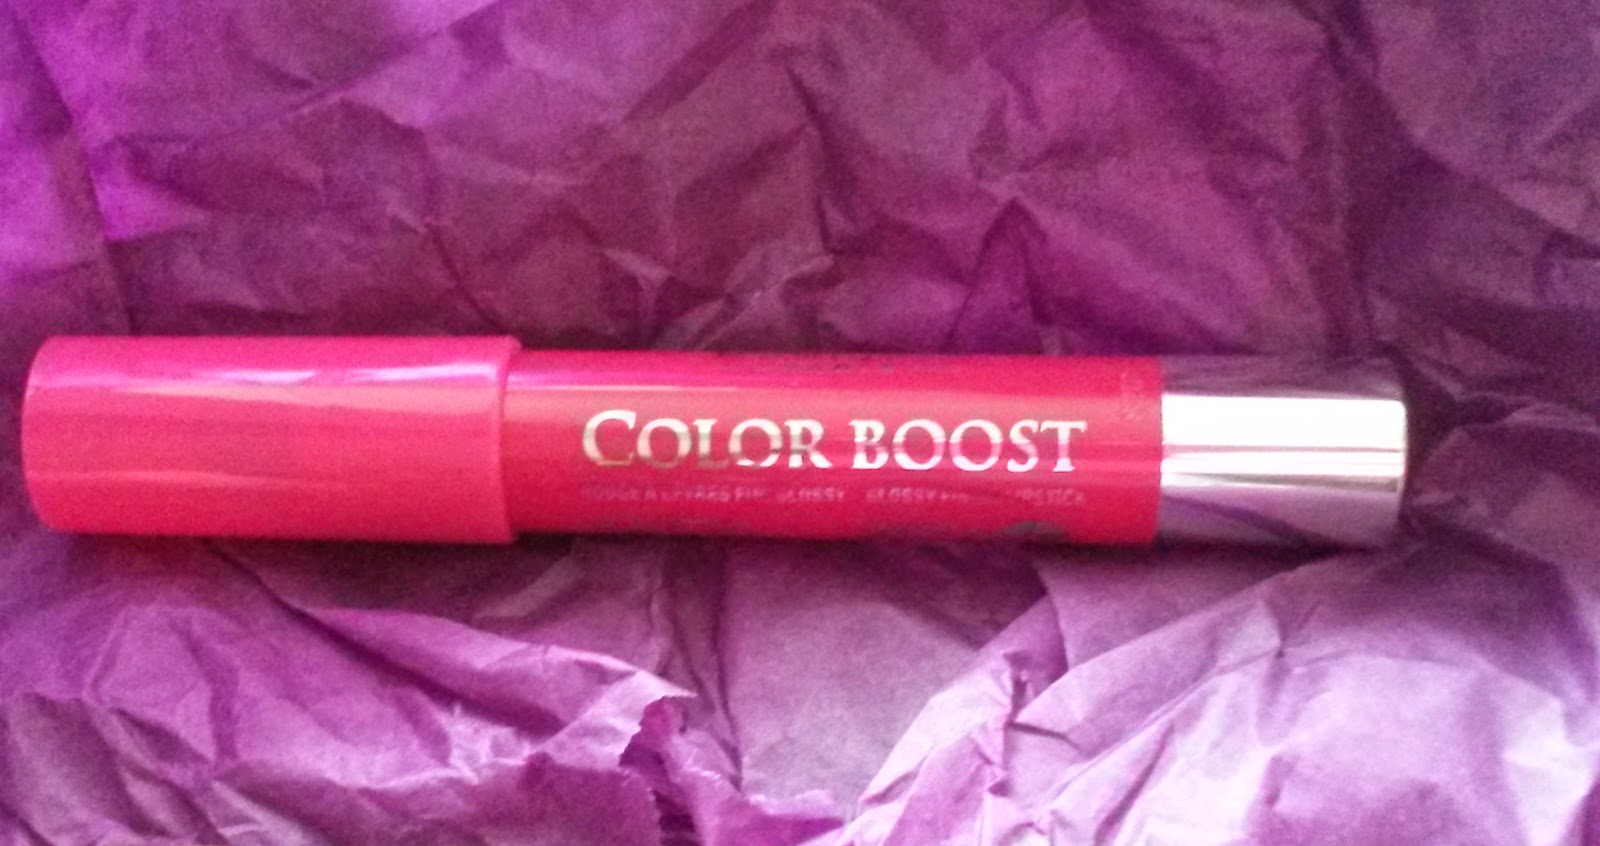 Color boost pinking of it bourjois